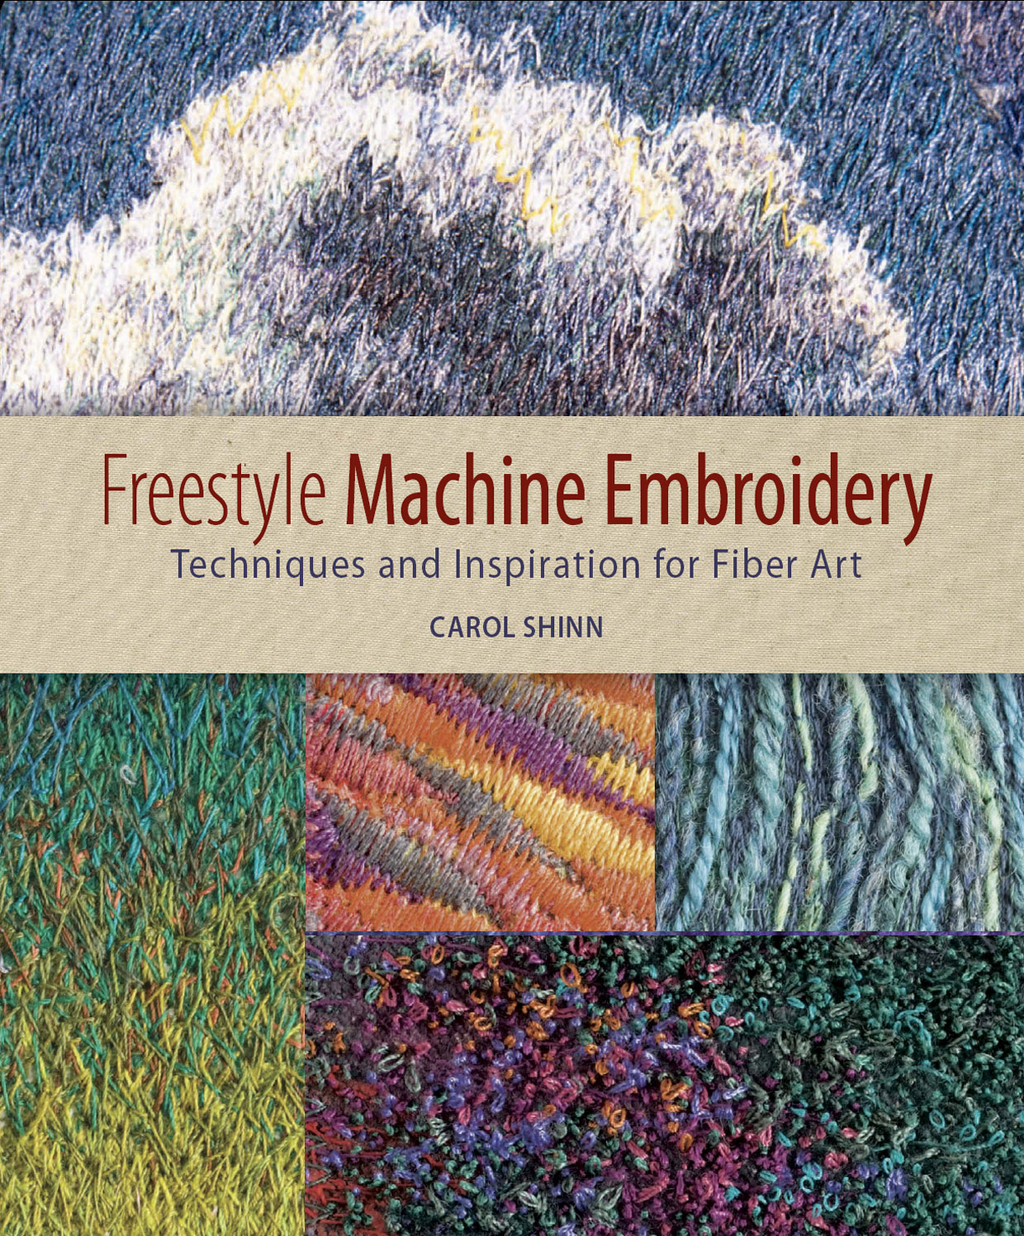 Freestyle Machine Embroidery Techniques and Inspiration for Fiber Art